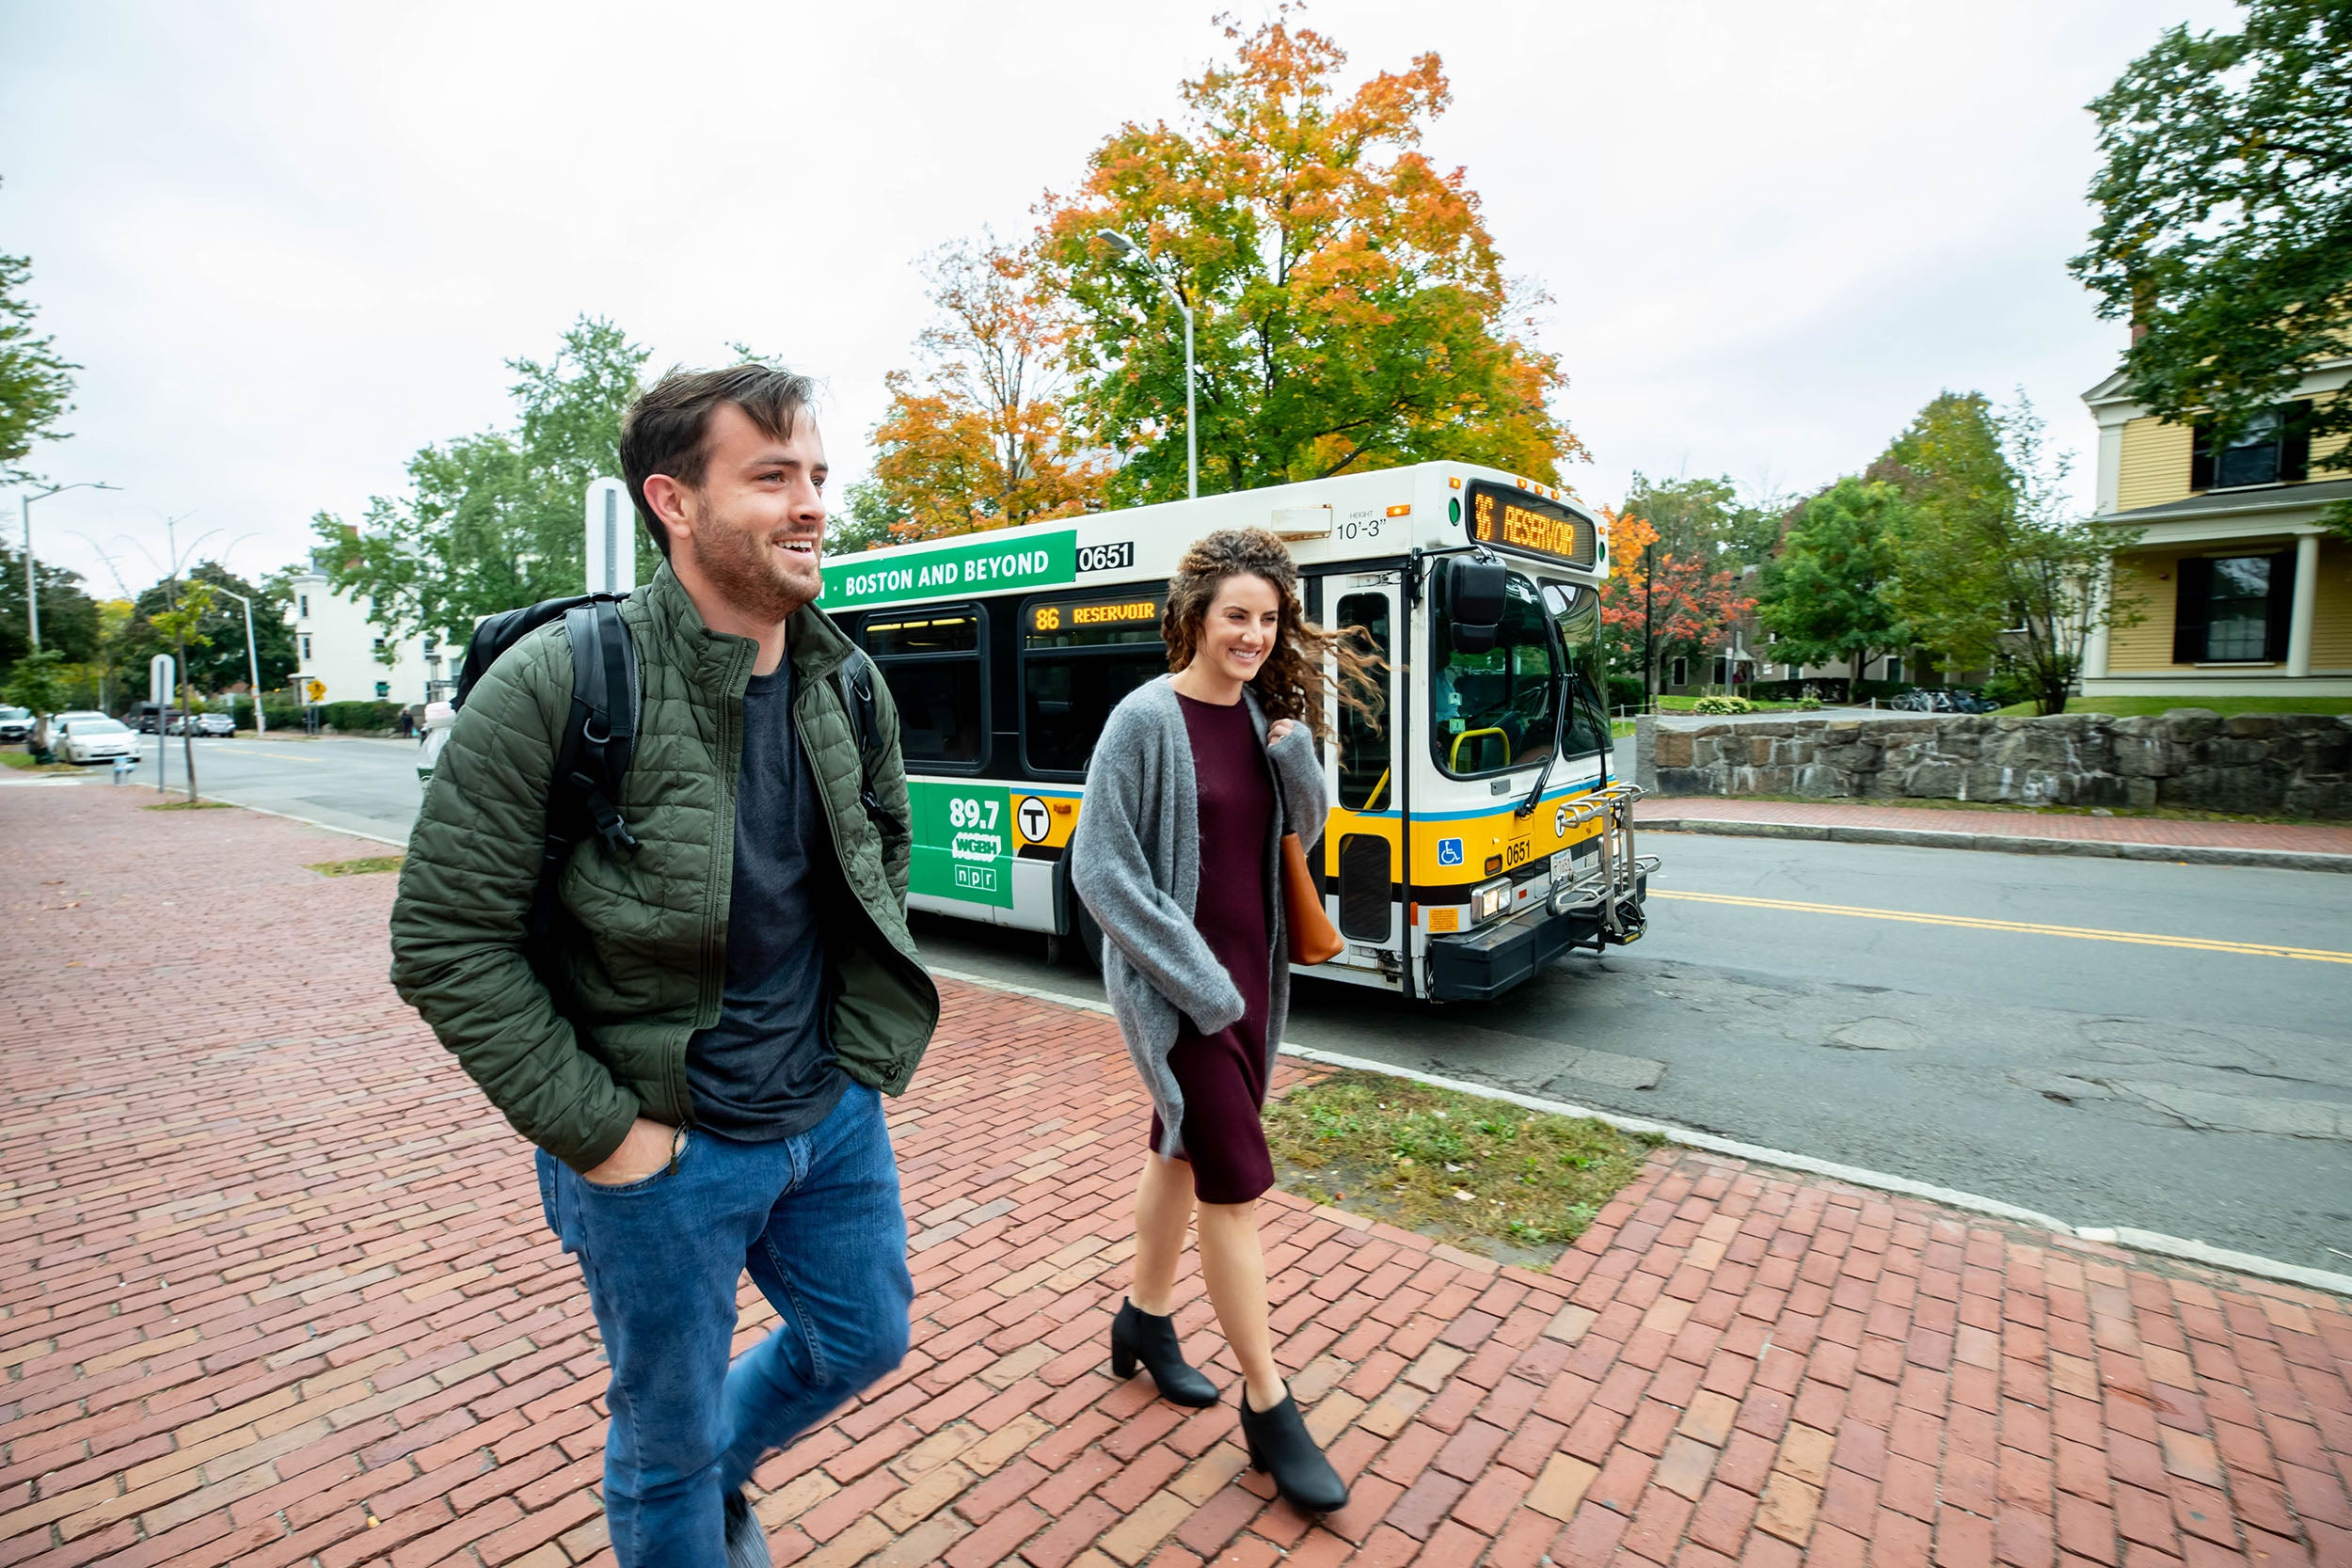 First-year student Hudson Miller and his wife, Hannah Miller, commute by bus to Harvard.